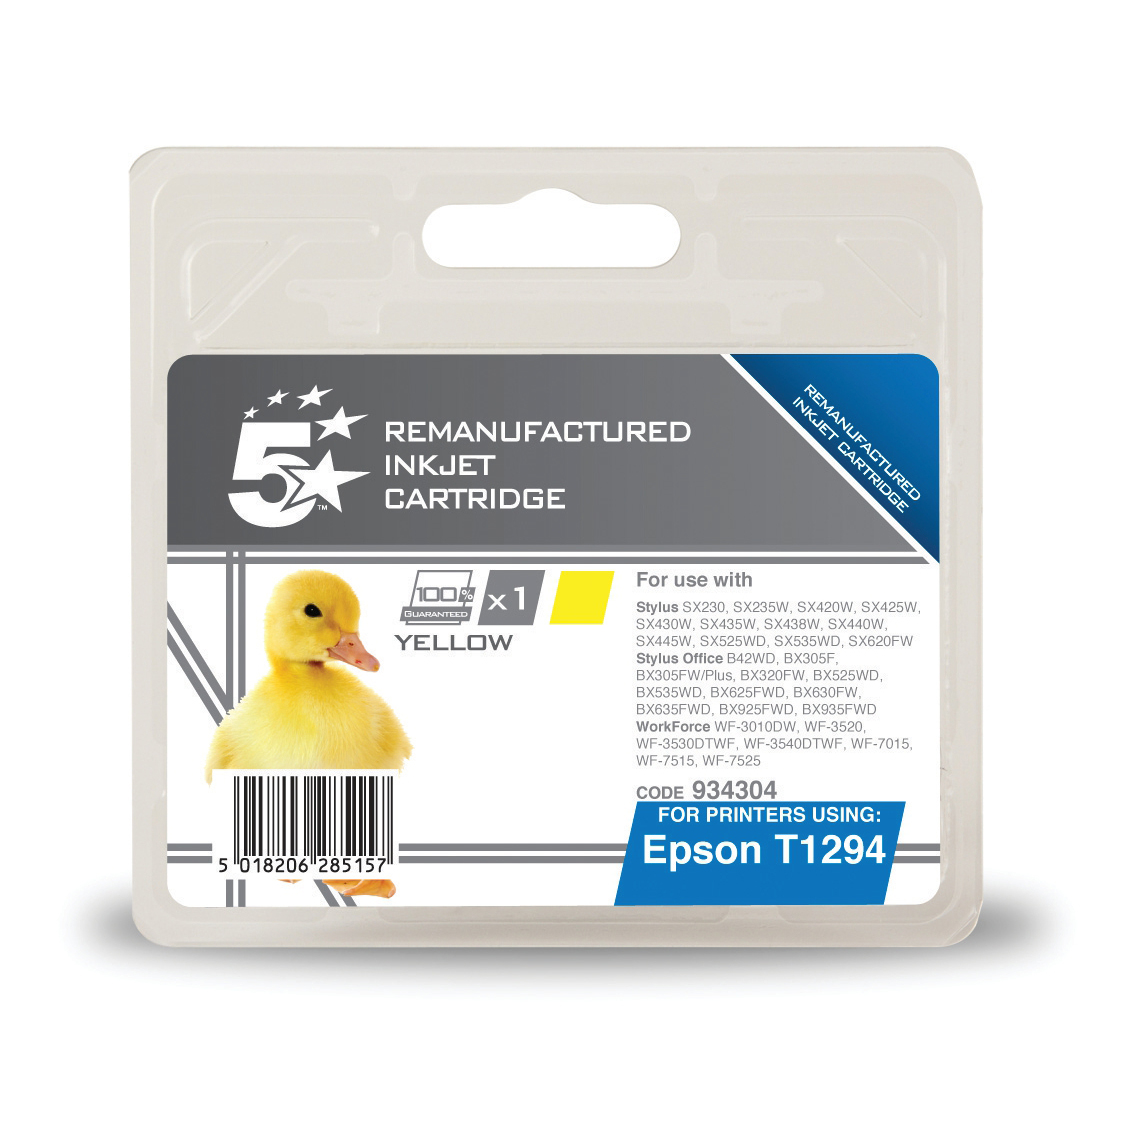 5 Star Office Remanufactured Inkjet Cartridge Page Life 545pp 7ml Yellow [Epson T1294 Alternative]